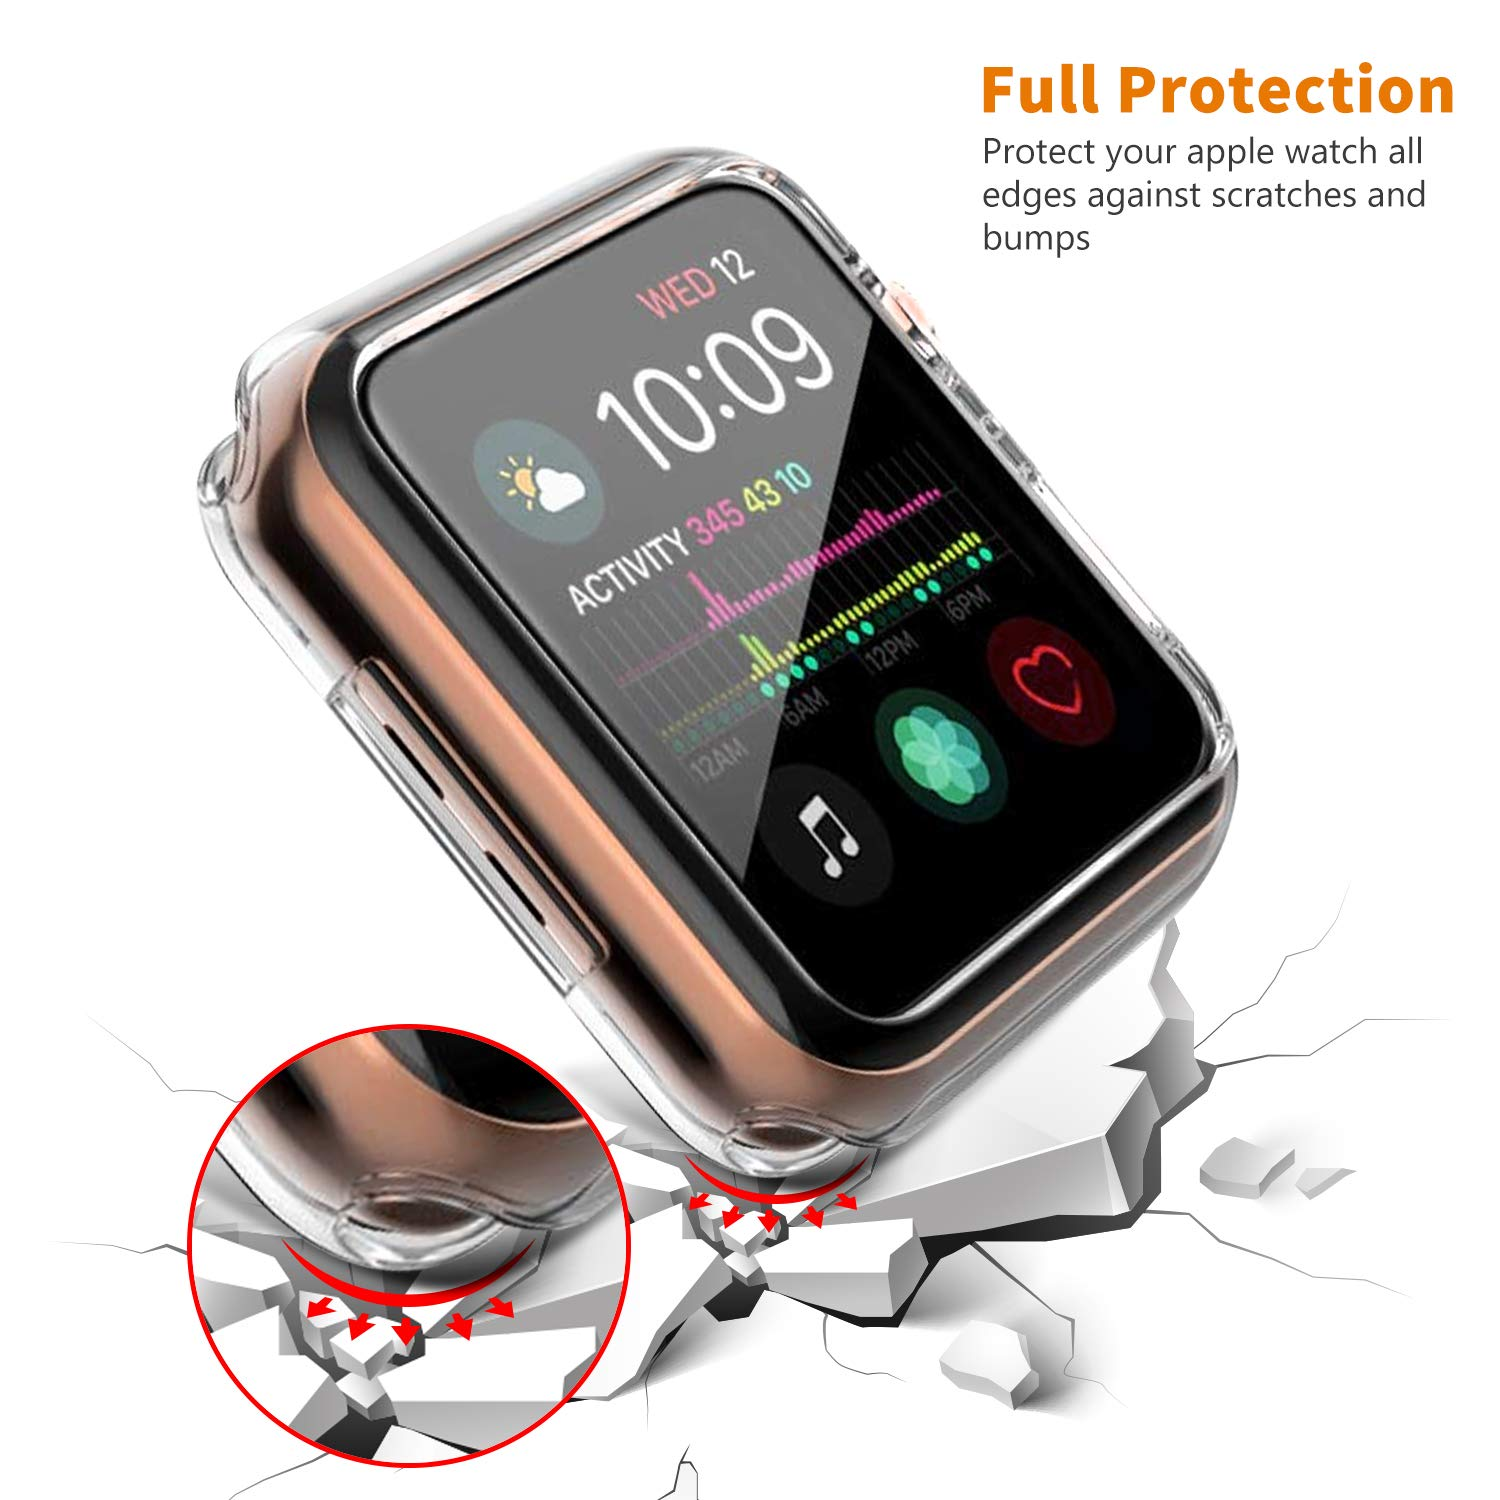 VODKE Compatible with Apple Watch Case Series 4 44mm, Soft TPU Watch Bumper Case Cover Protector Compatible with iWatch Series 4 by VODKE (Image #3)